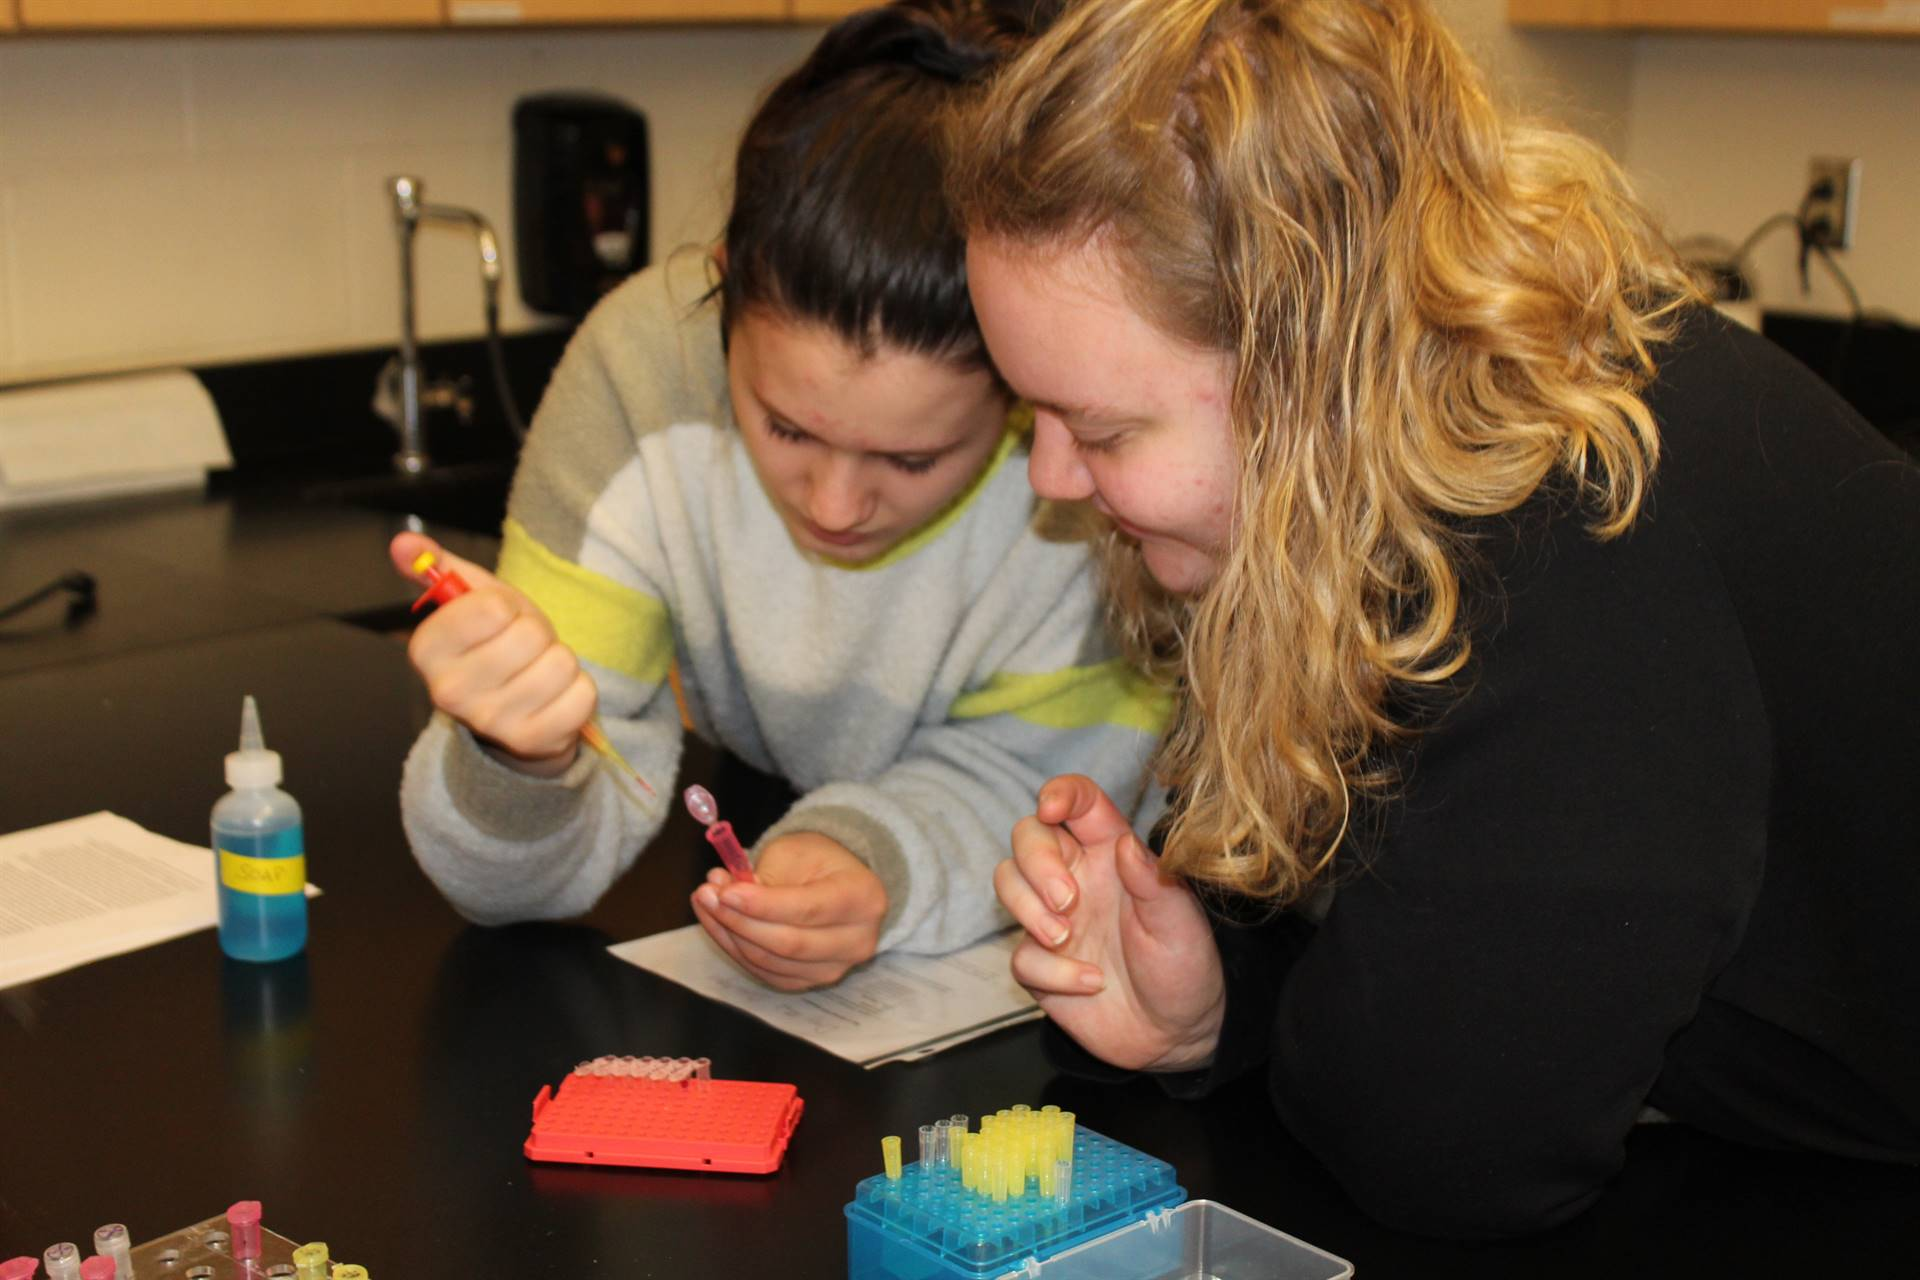 Two students conducting an experiment